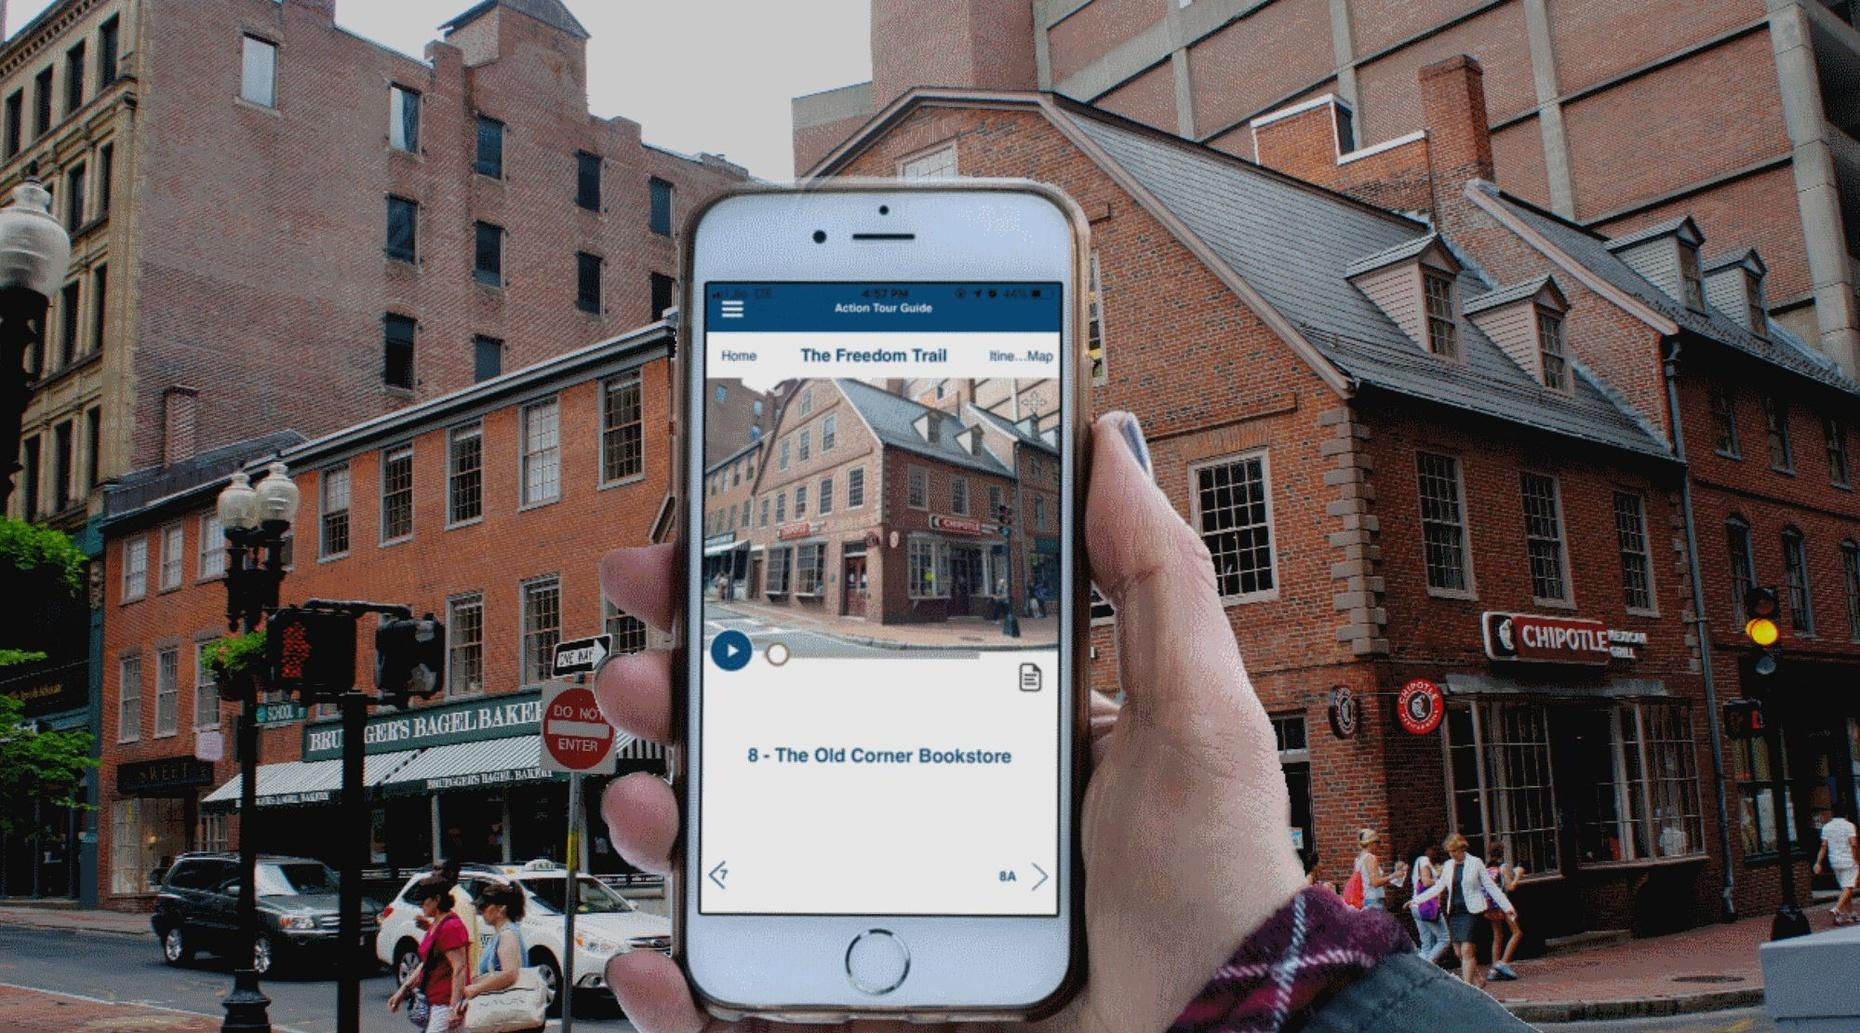 Boston's Freedom Trail Self-Guided Audio Tour